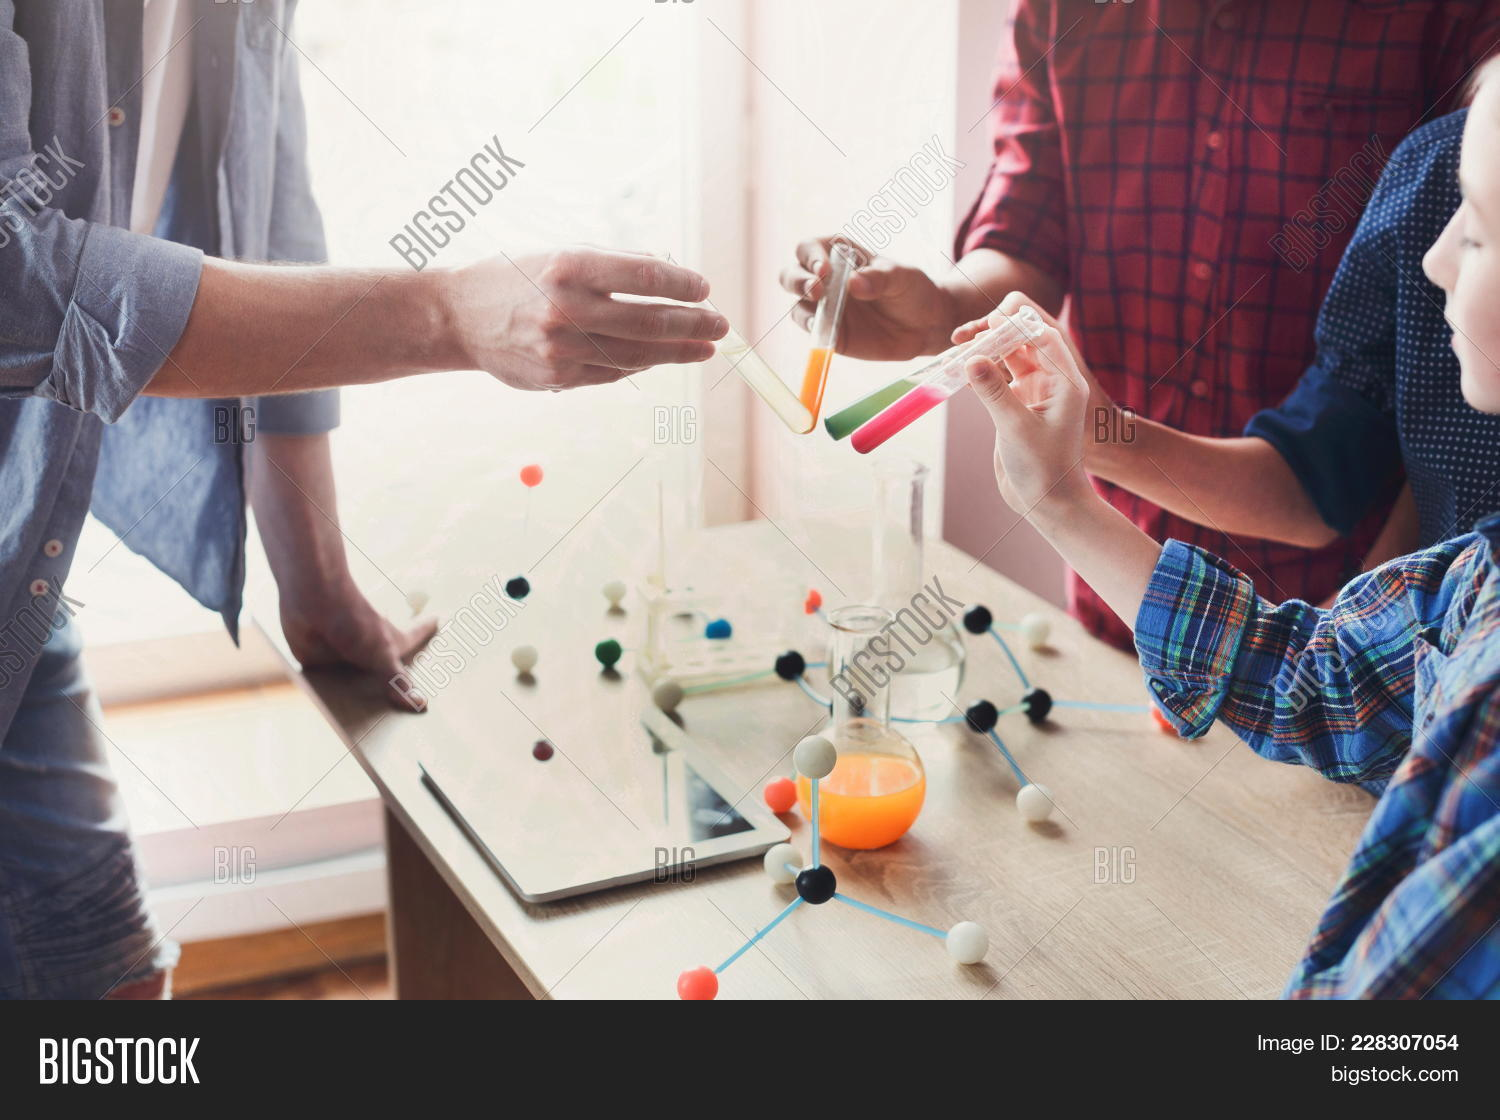 amusing,background,biochemistry,biology,boy,chemistry,child,childhood,children,class,concept,discovery,diy,education,equipment,experiment,flask,formula,fun,girl,group,hobby,invention,kid,knowledge,lab,laboratory,learning,lesson,microscope,modern,person,problem,pupil,reagent,research,school,science,scientist,stem,student,study,studying,teacher,technology,teenager,test,tube,unrecognizable